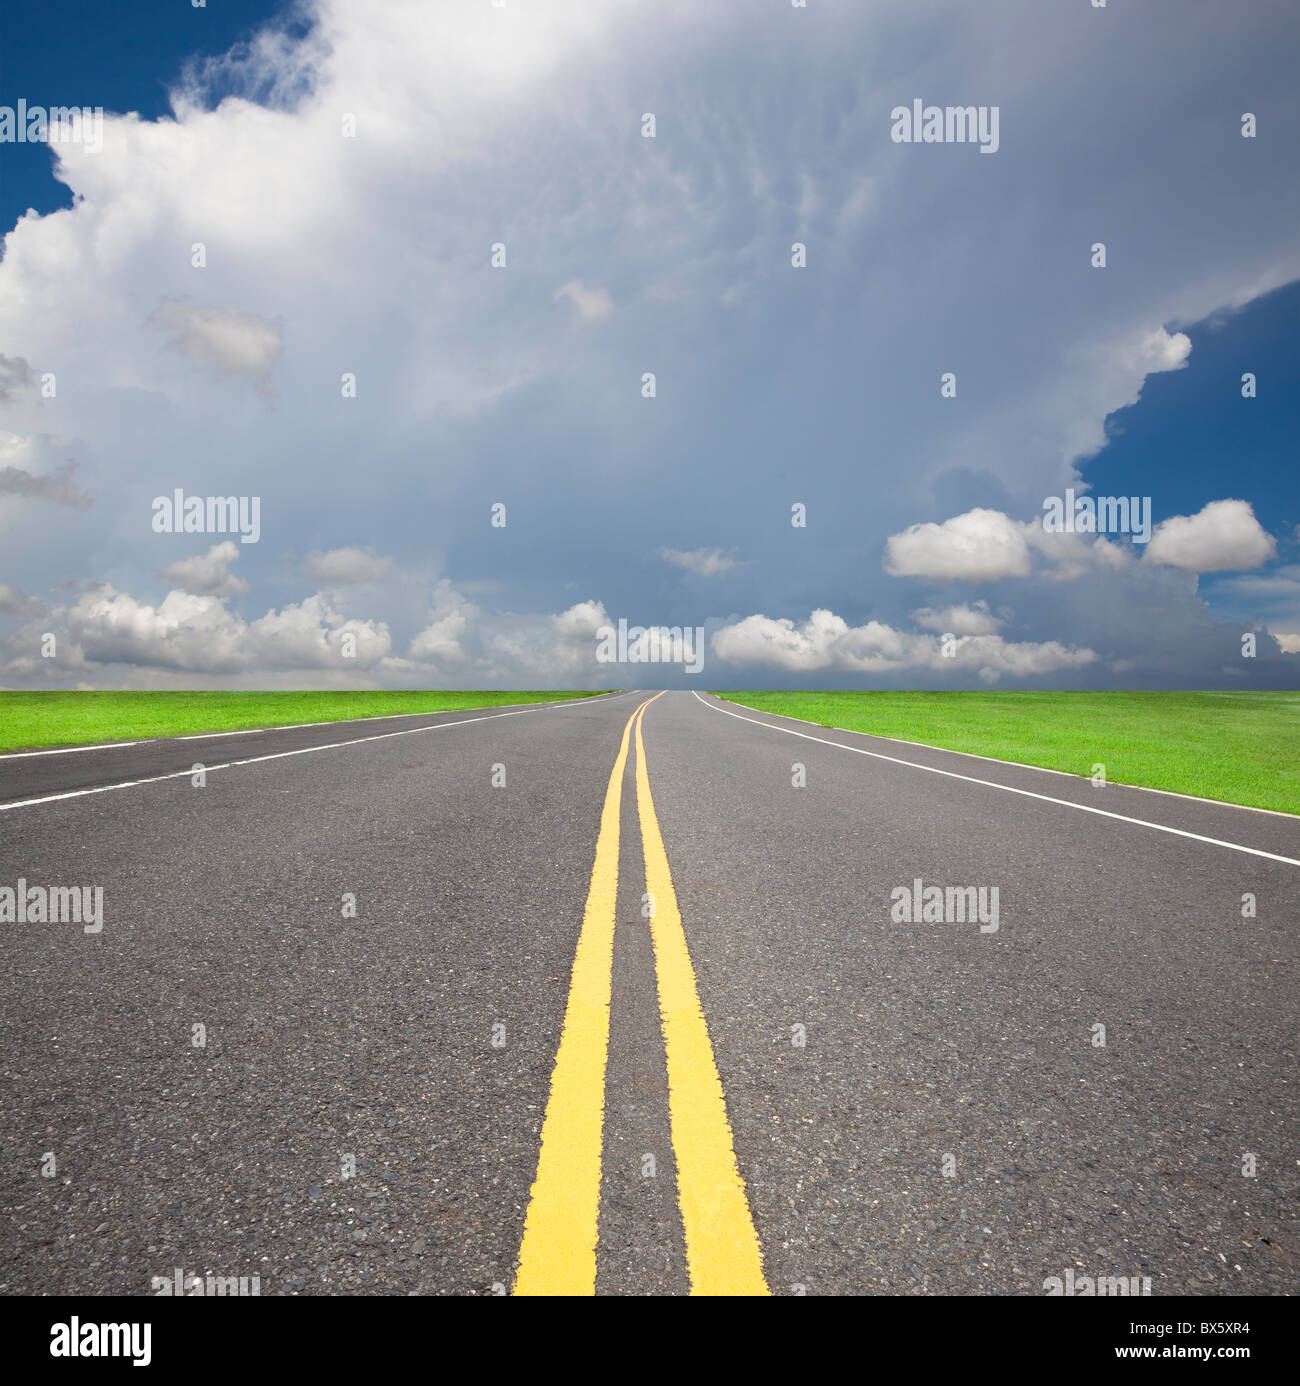 empty country road pass through the storm and cloud - Stock Image